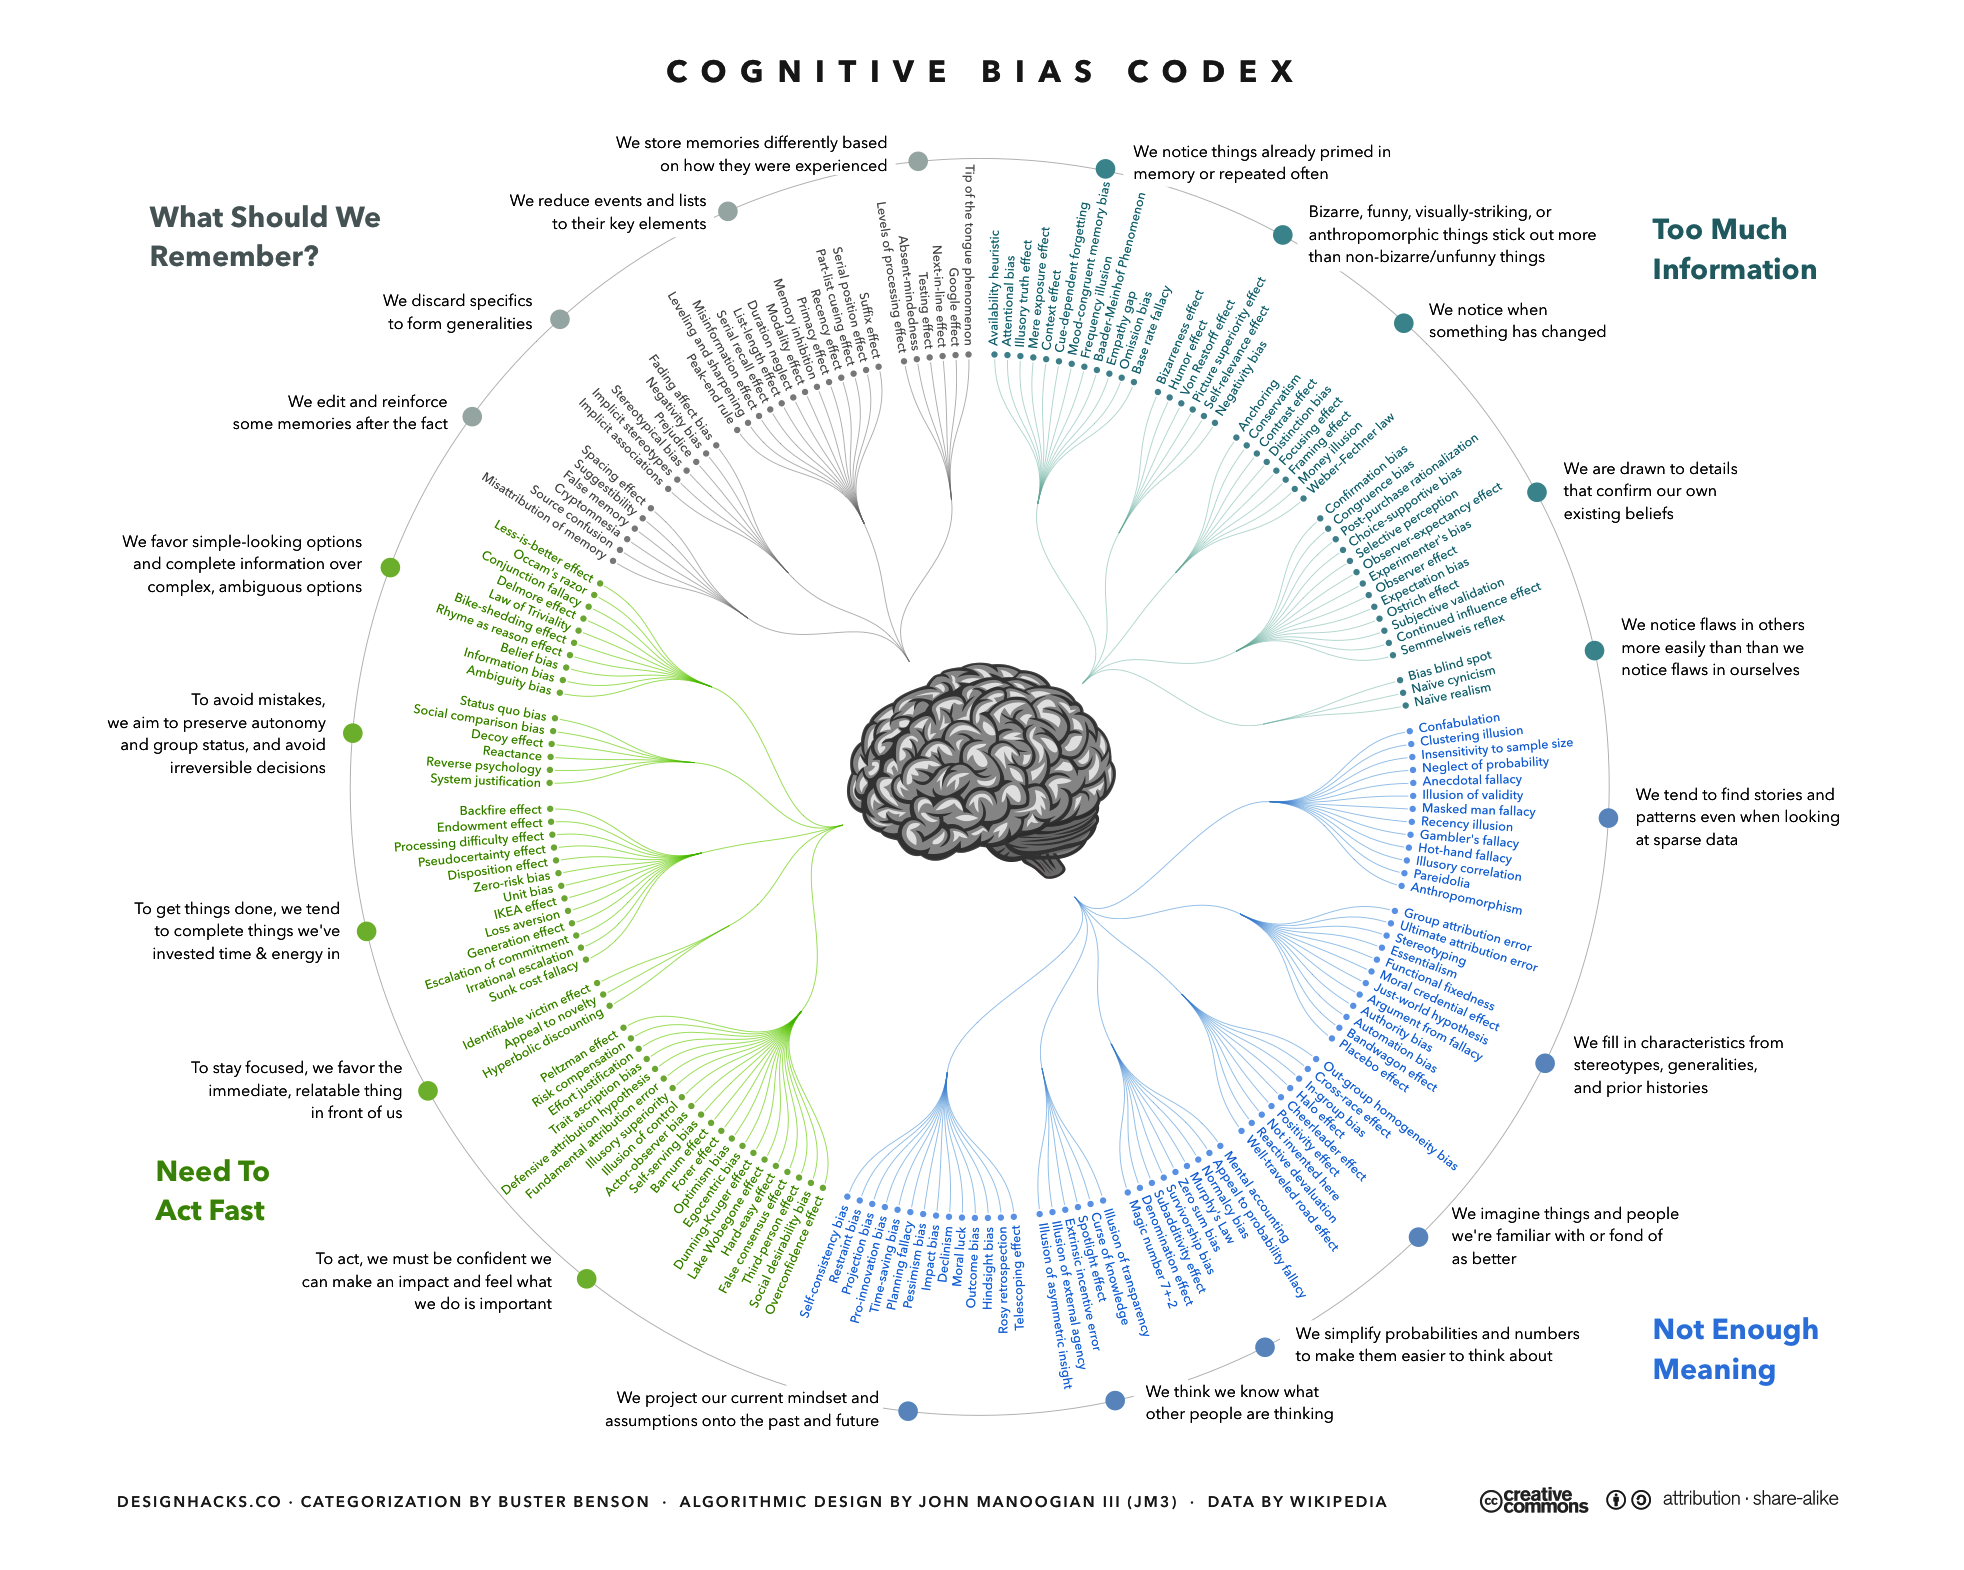 The_Cognitive_Bias_Codex_-_180+_biases,_designed_by_John_Manoogian_III_(jm3).png